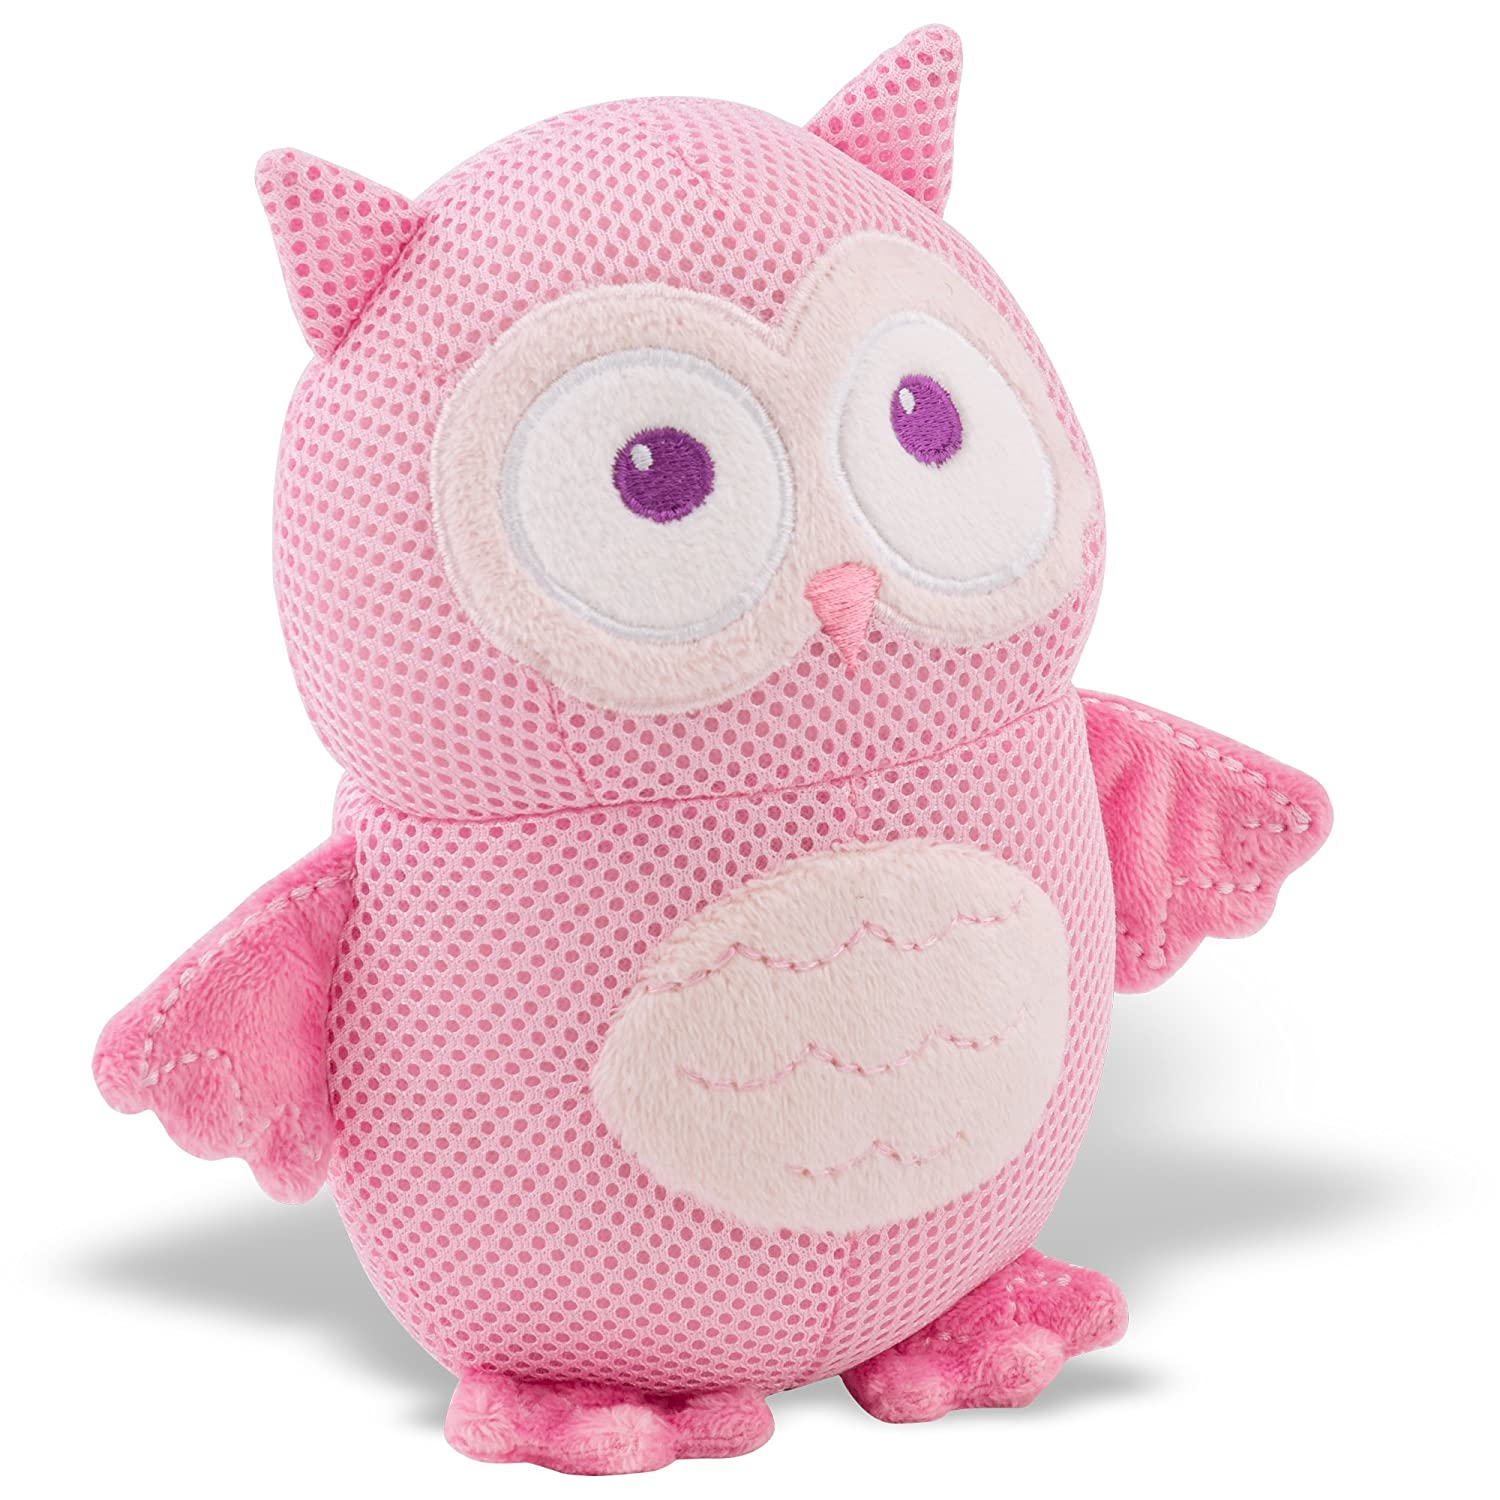 BreathableBaby Breathables Soft Toy Owl Amazon Baby